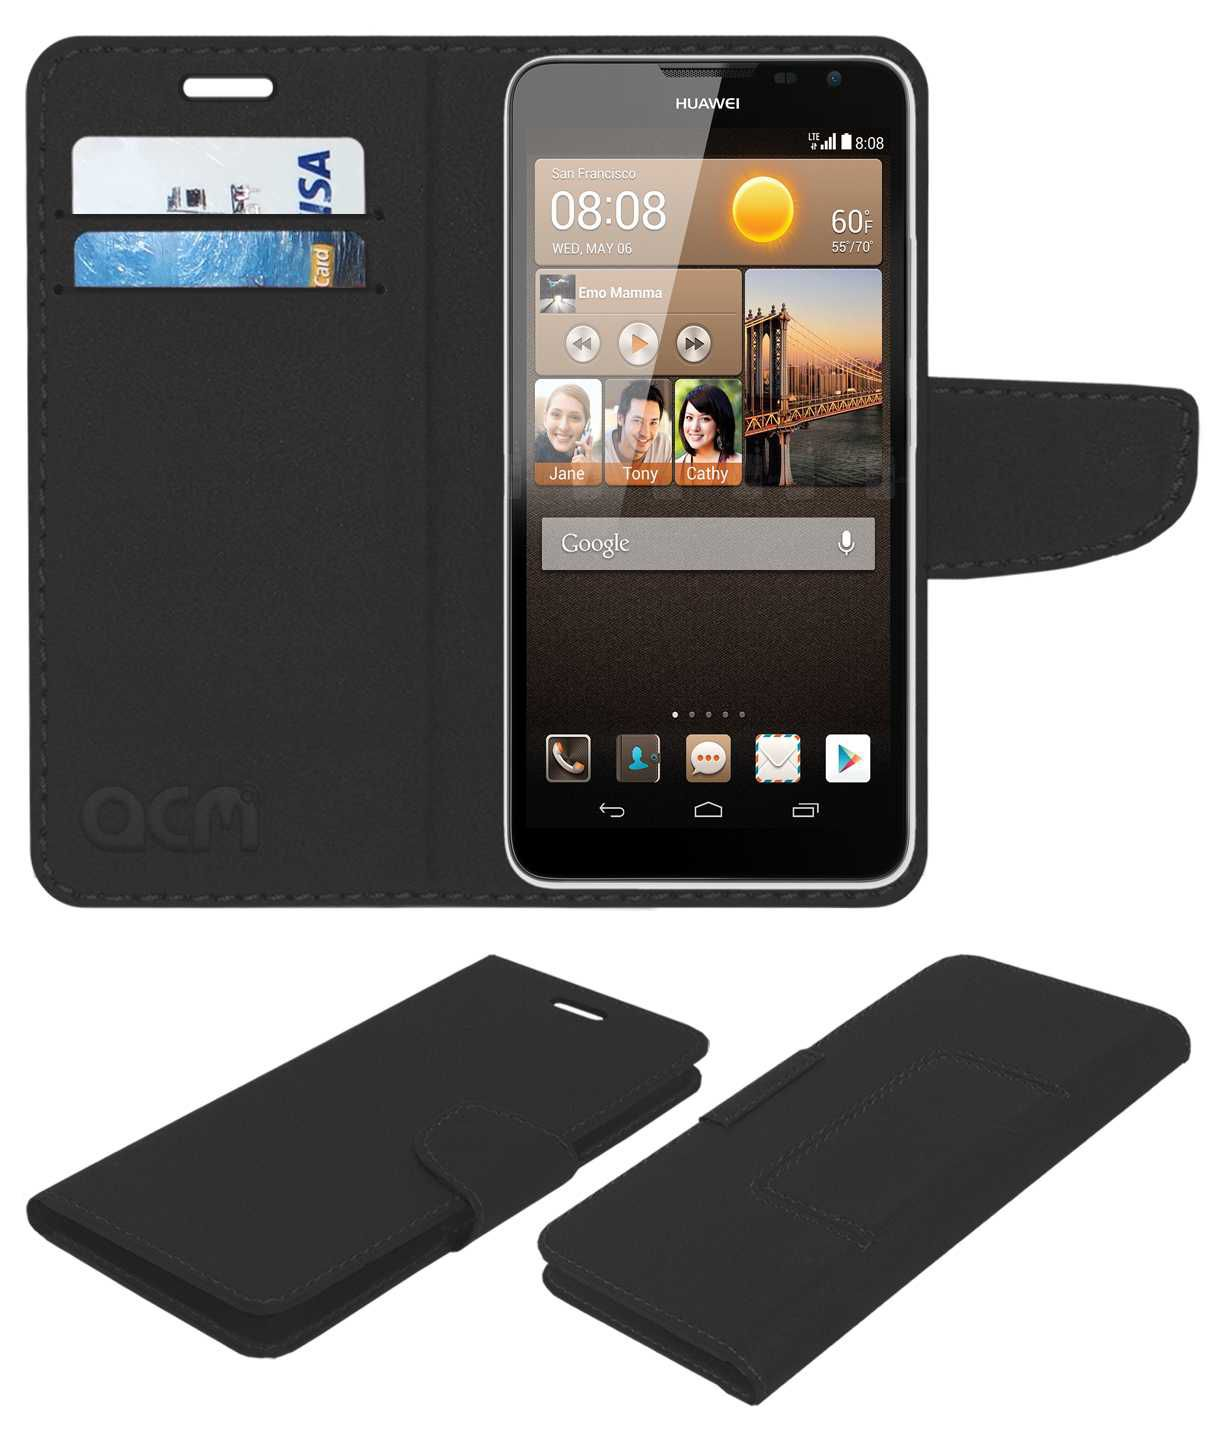 Huawei Ascend Mate2 4G Flip Cover by ACM - Black